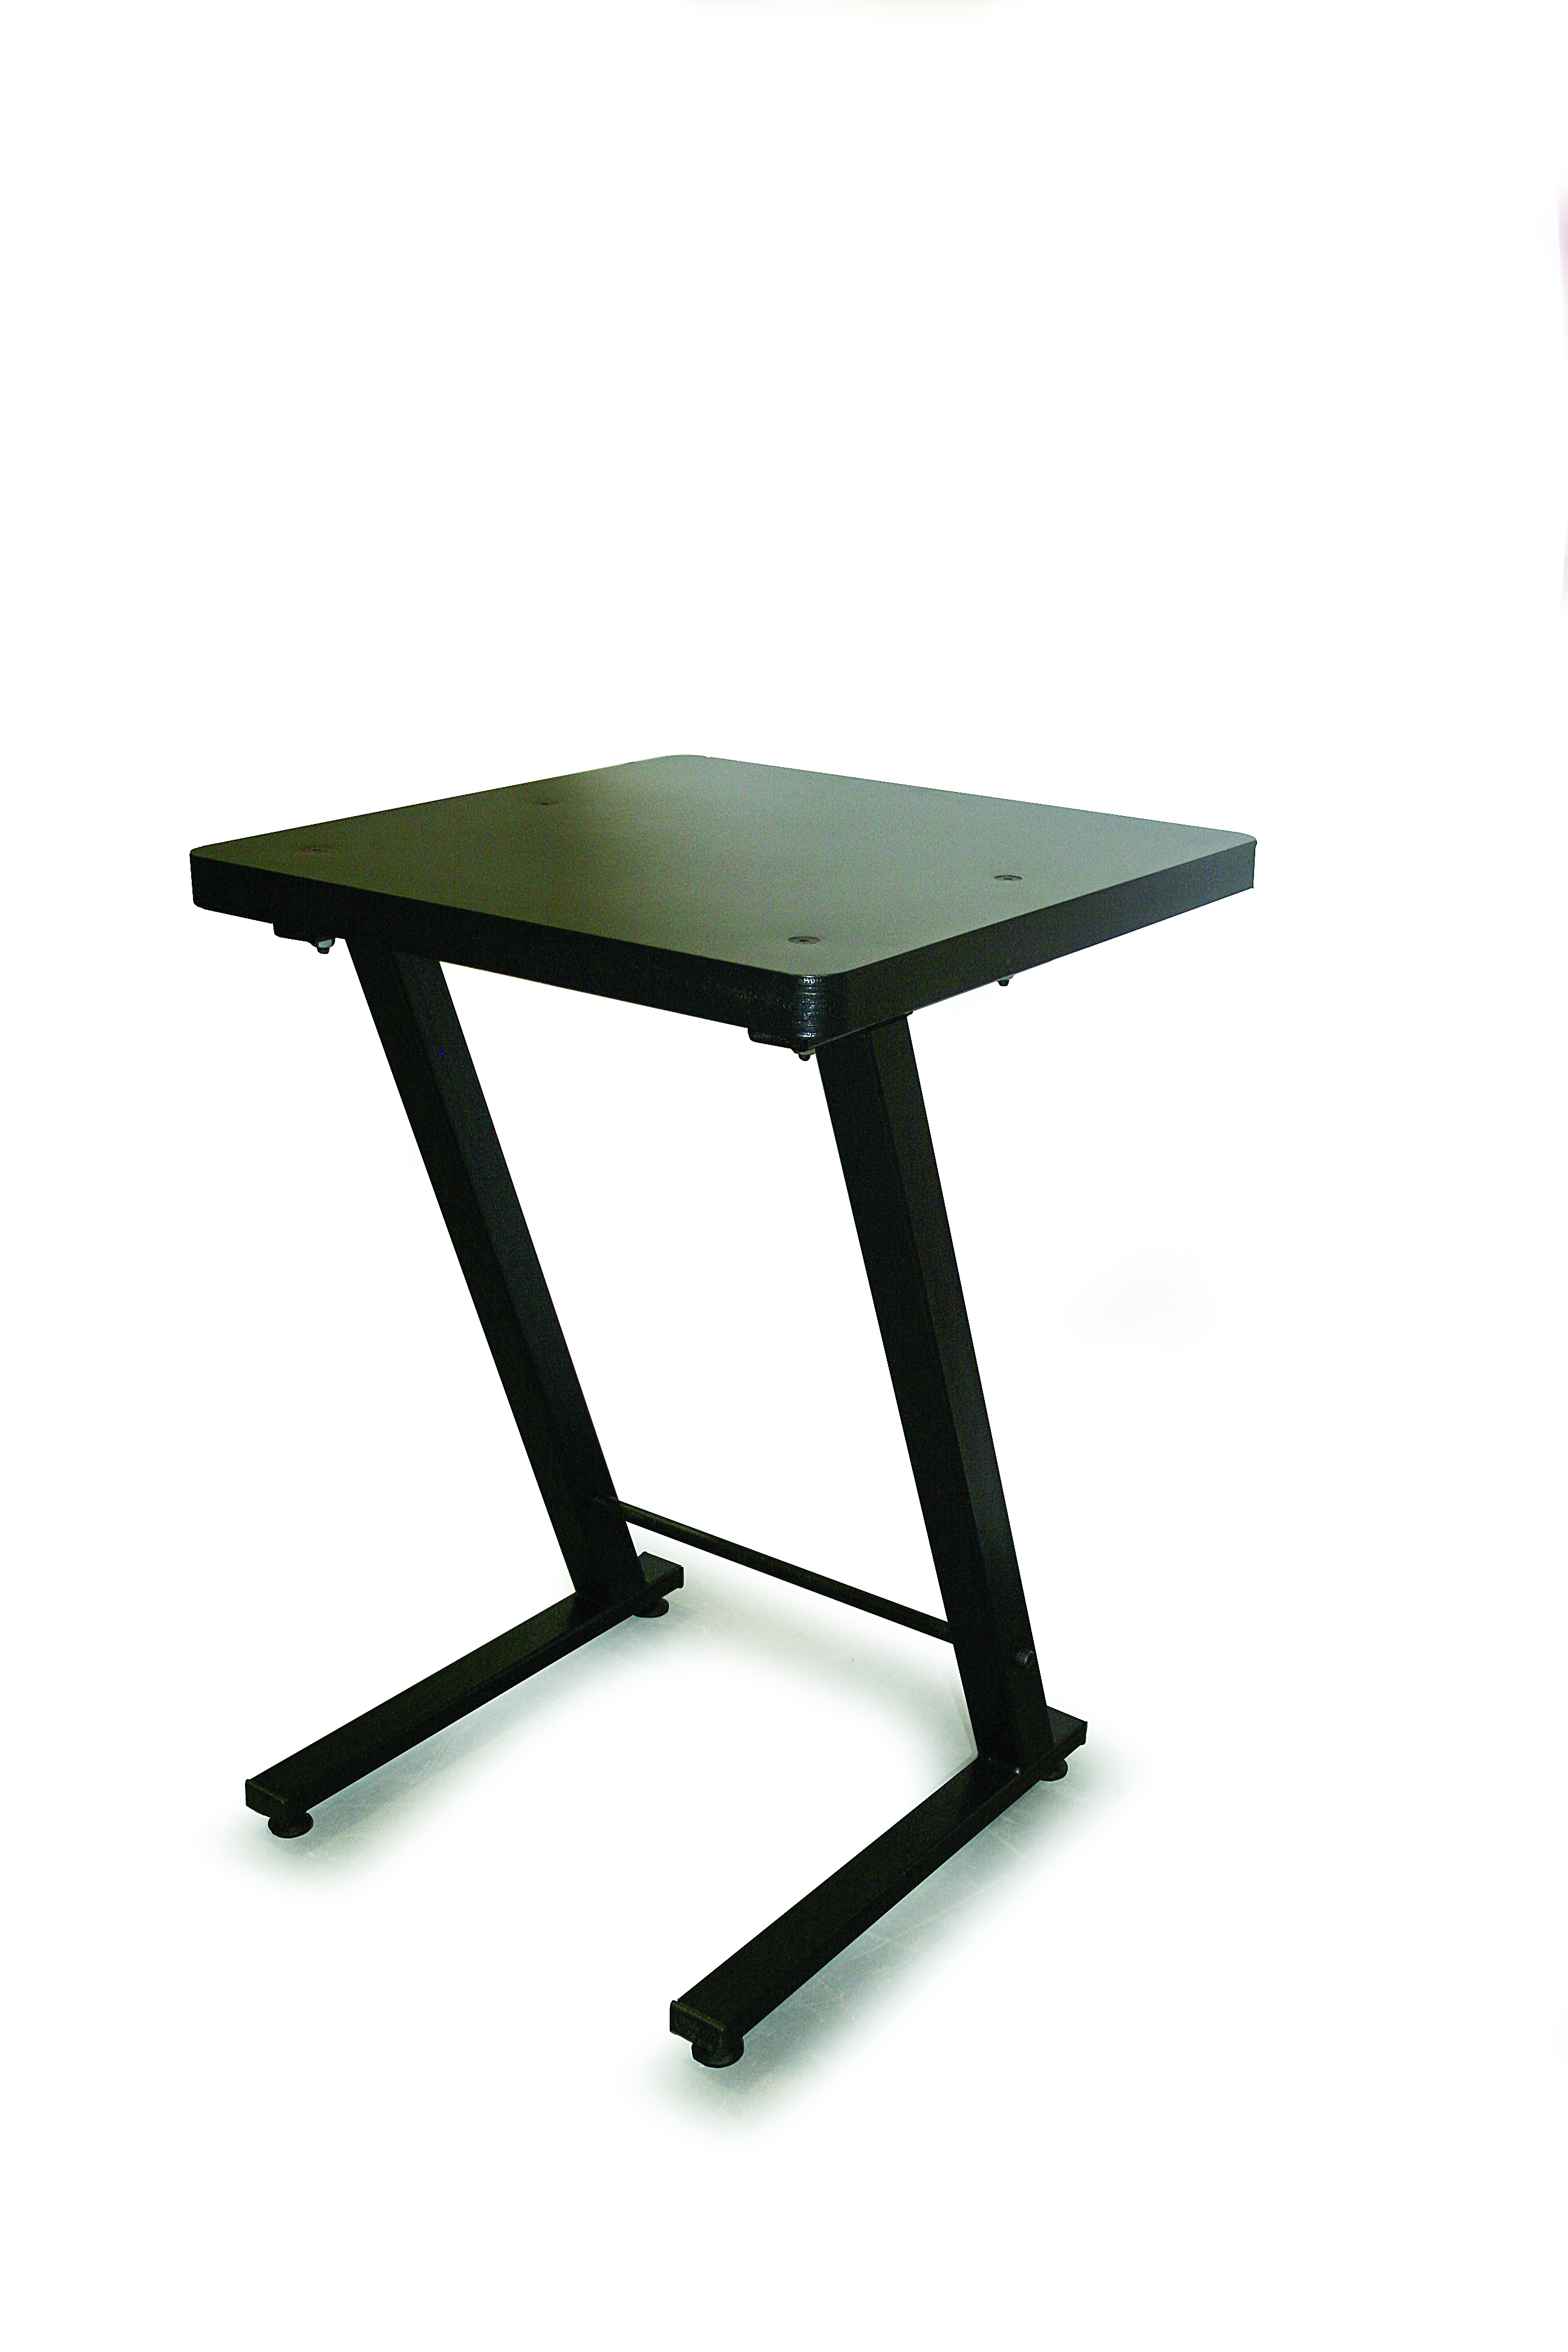 TABLE FOR AP2 MACHINE SELF ASSEMBLY